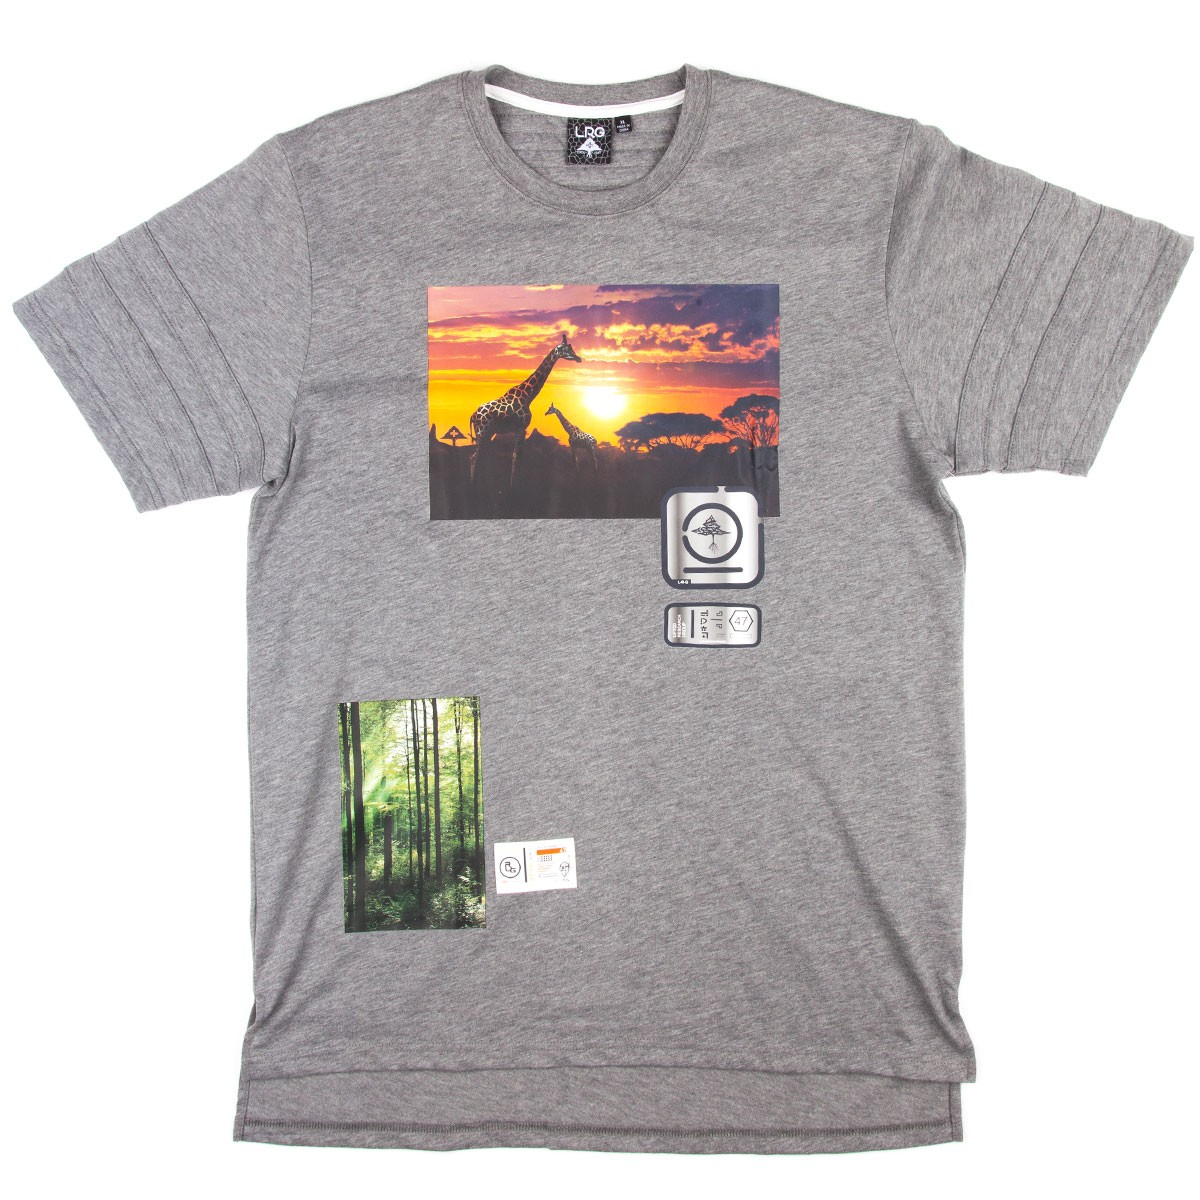 LRG Elevated Vision Long T-Shirt - Charcoal Heather